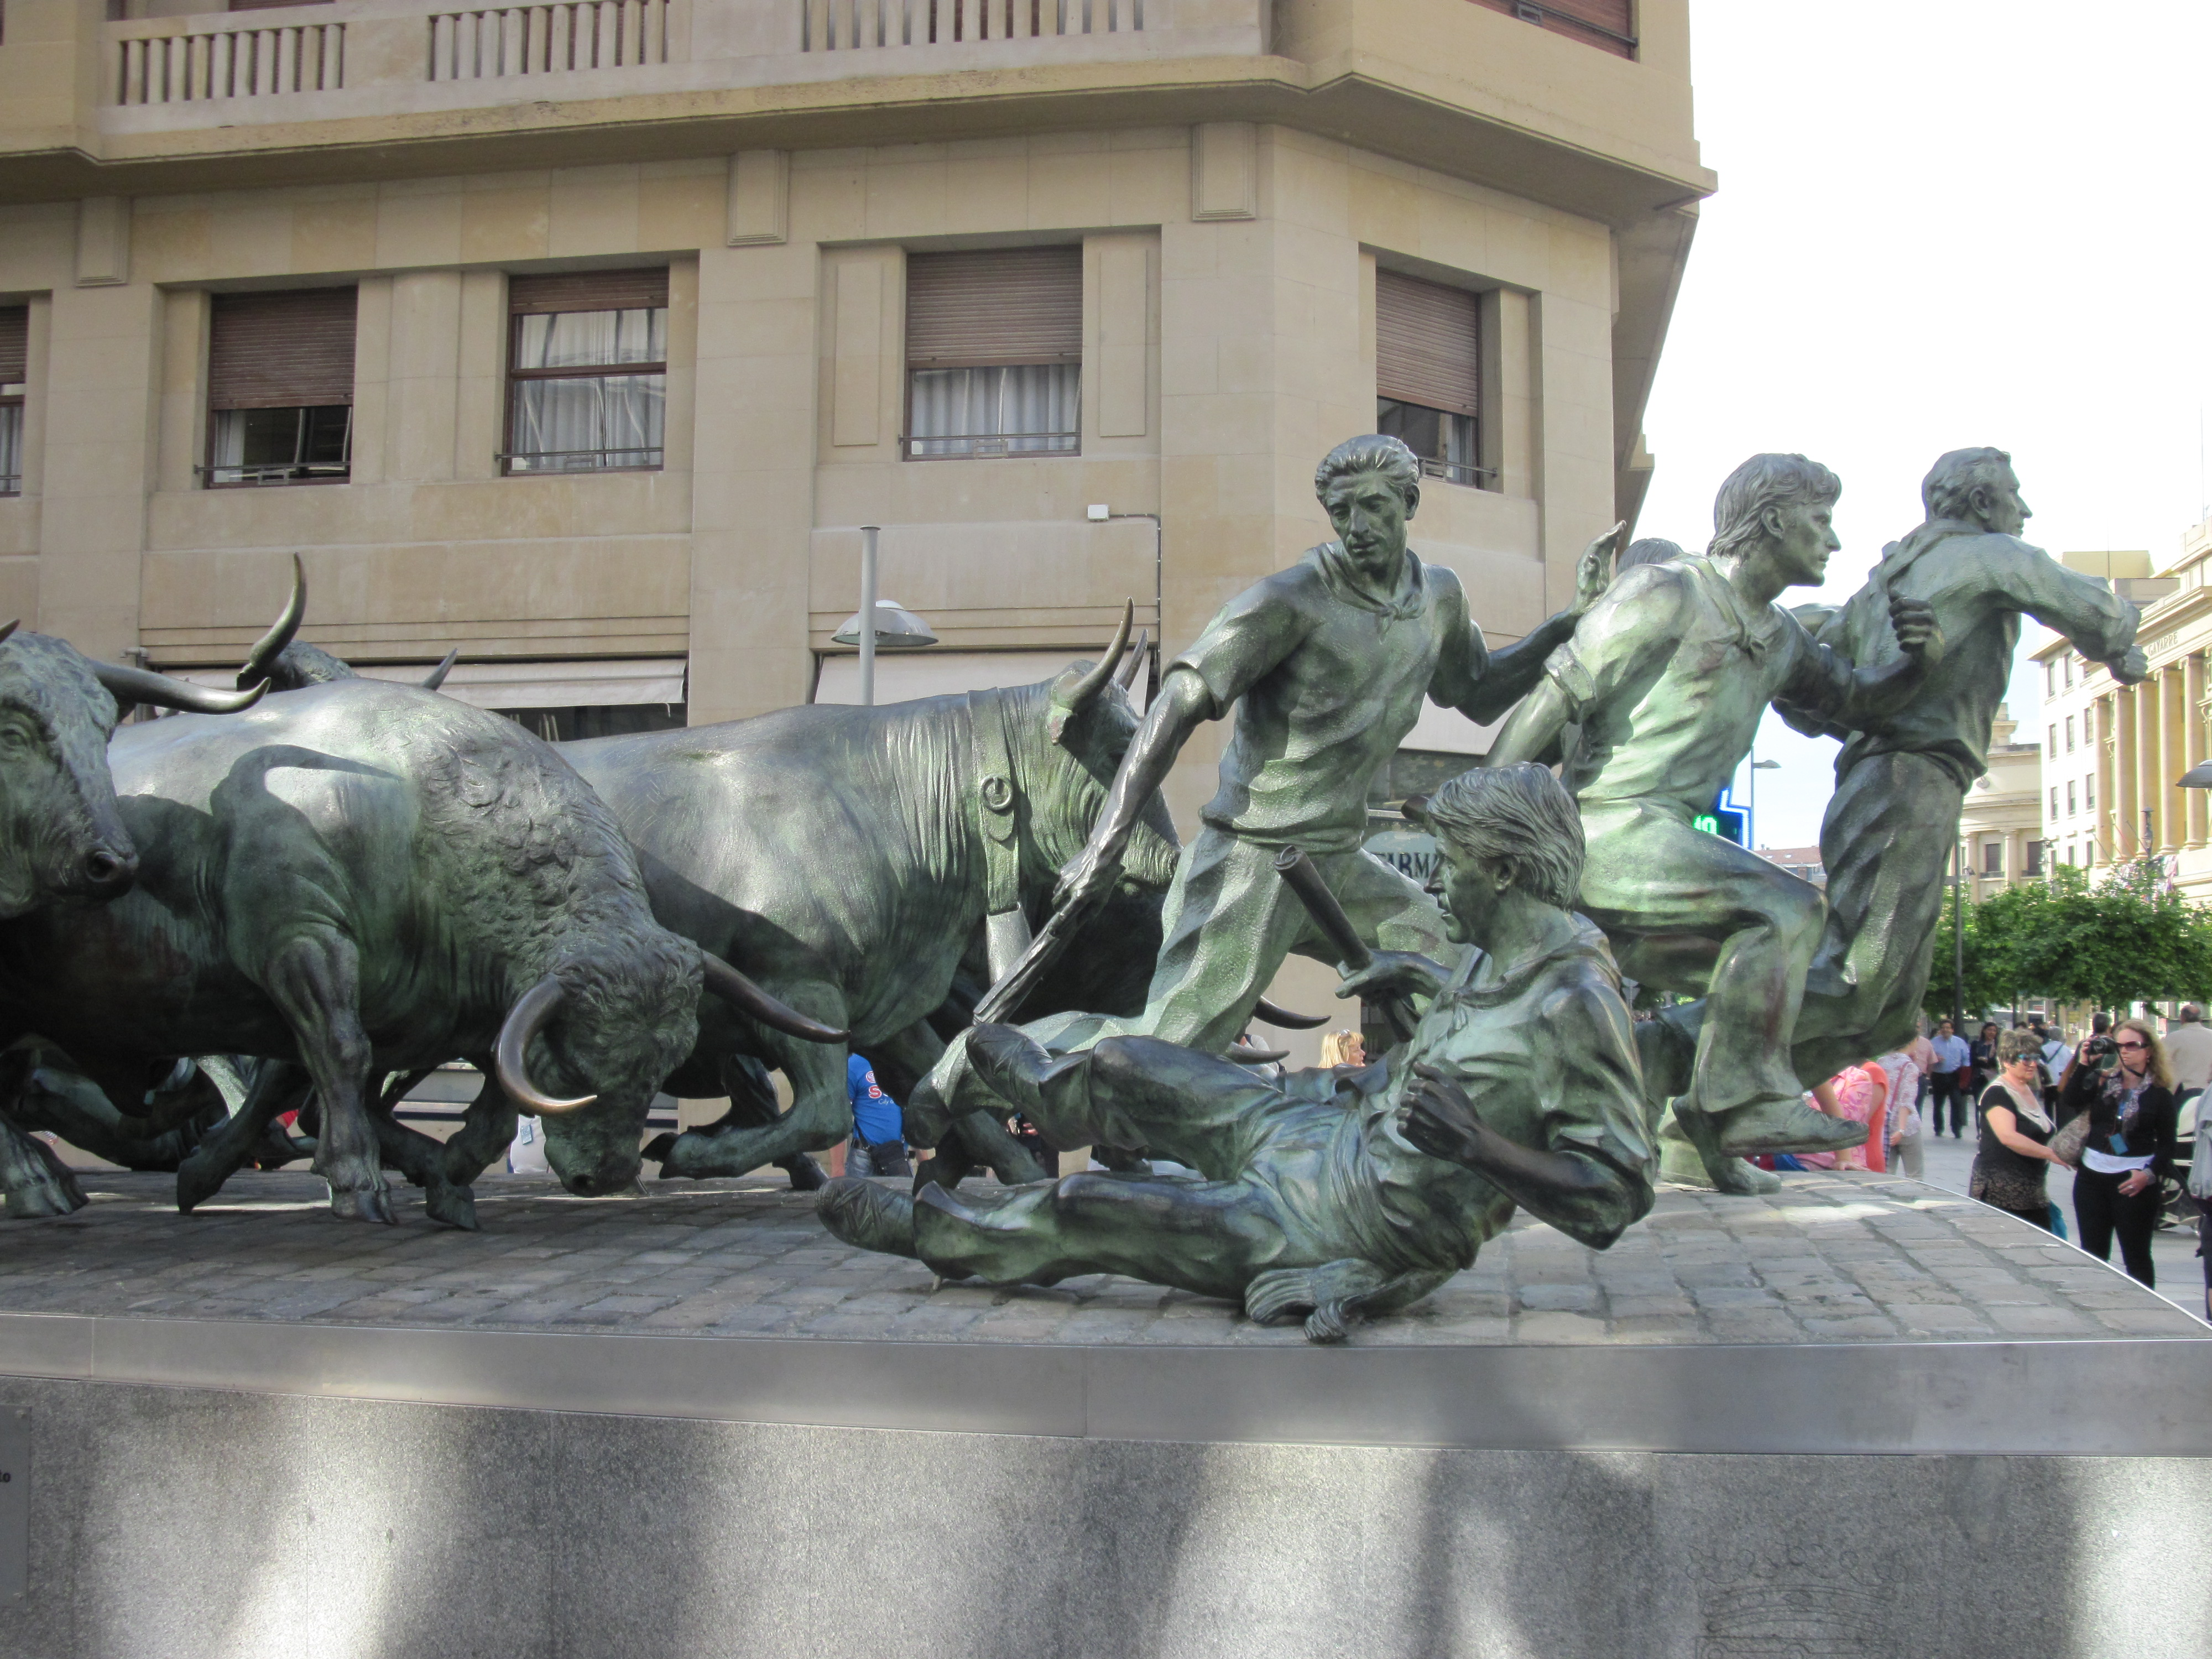 File:Monument in Pamplona IMG 3179.JPG - Wikimedia Commons